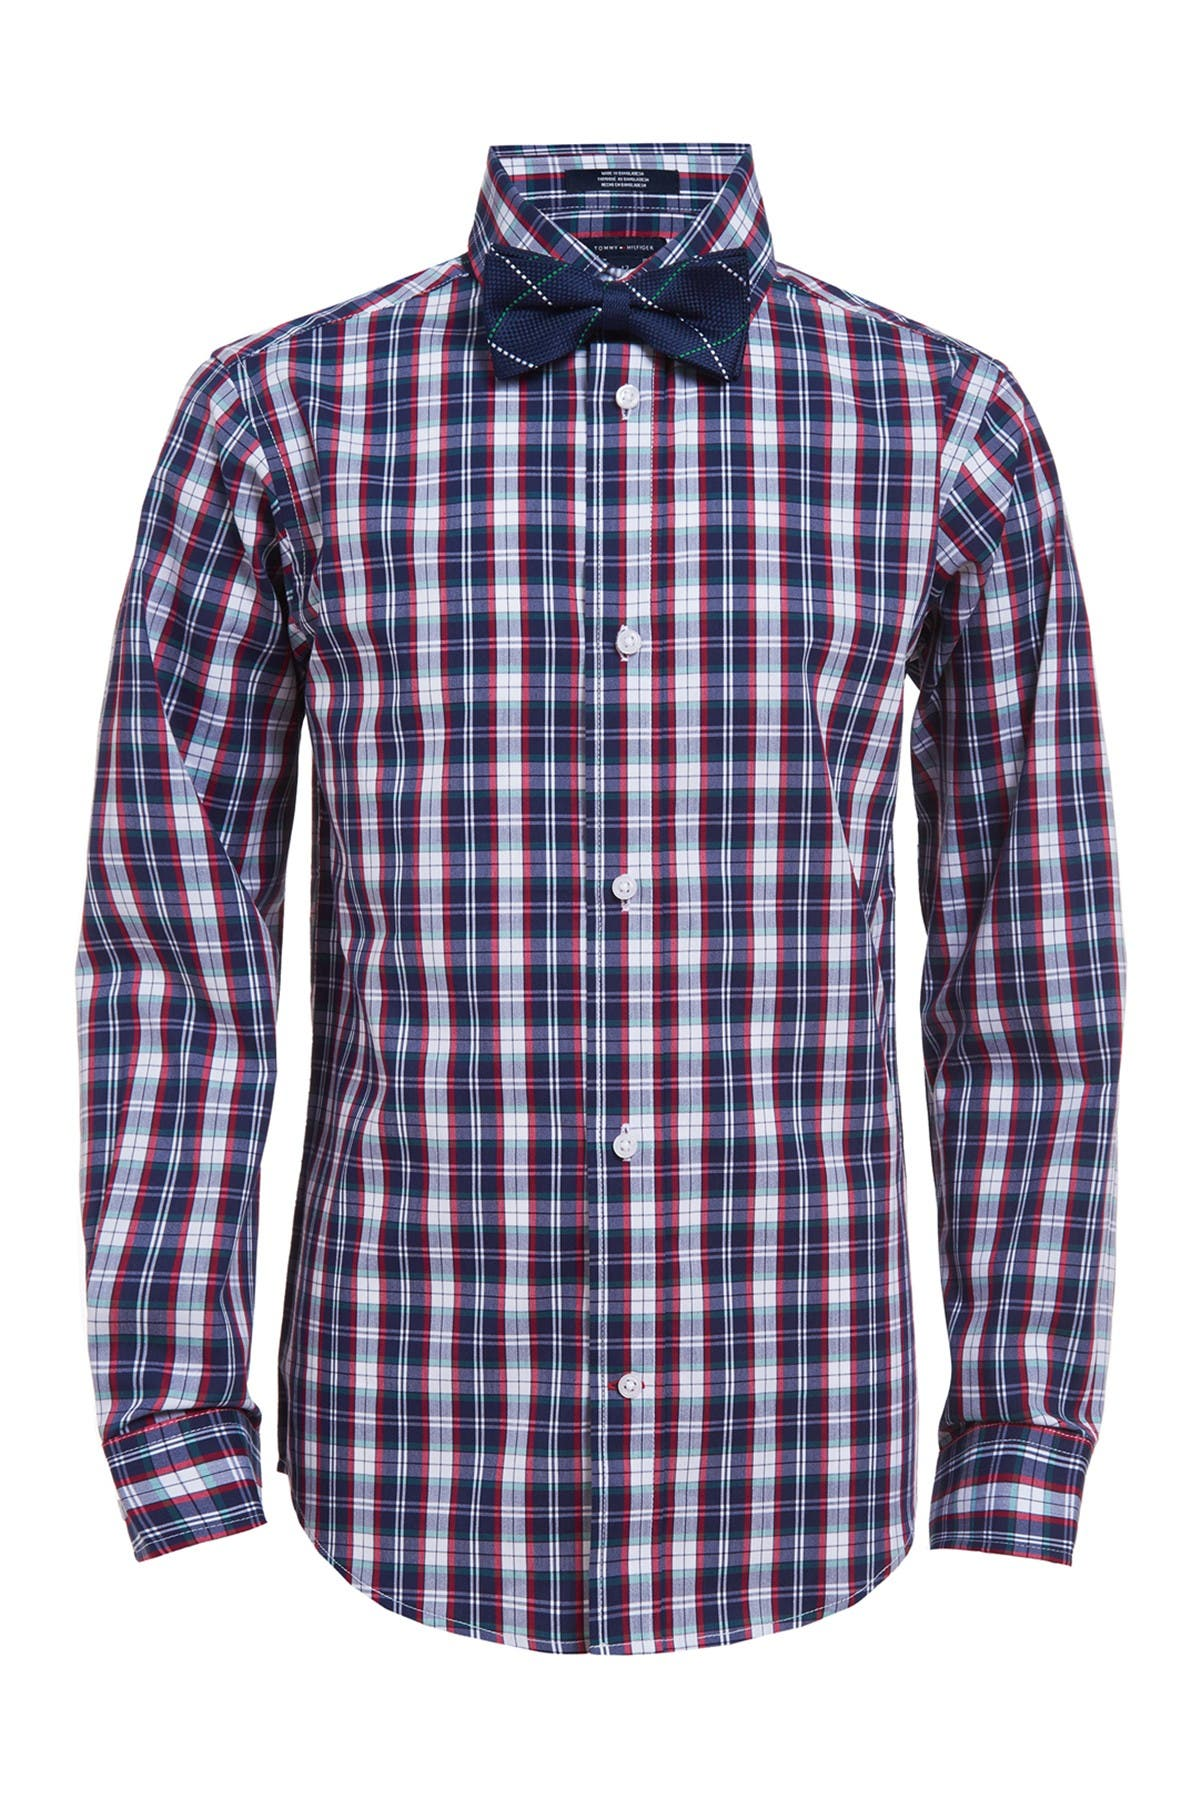 Image of Tommy Hilfiger Road Map Plaid Shirt & Bow Tie